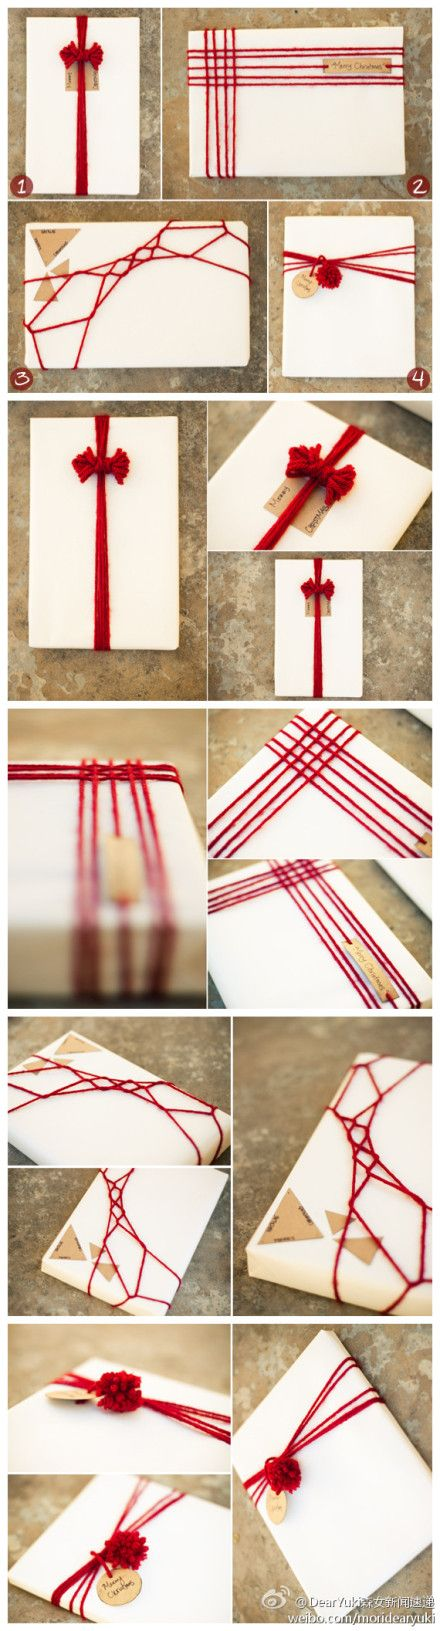 DIY Creative Ways to Gift Wrap Using a Ball of Yarn #Christmas